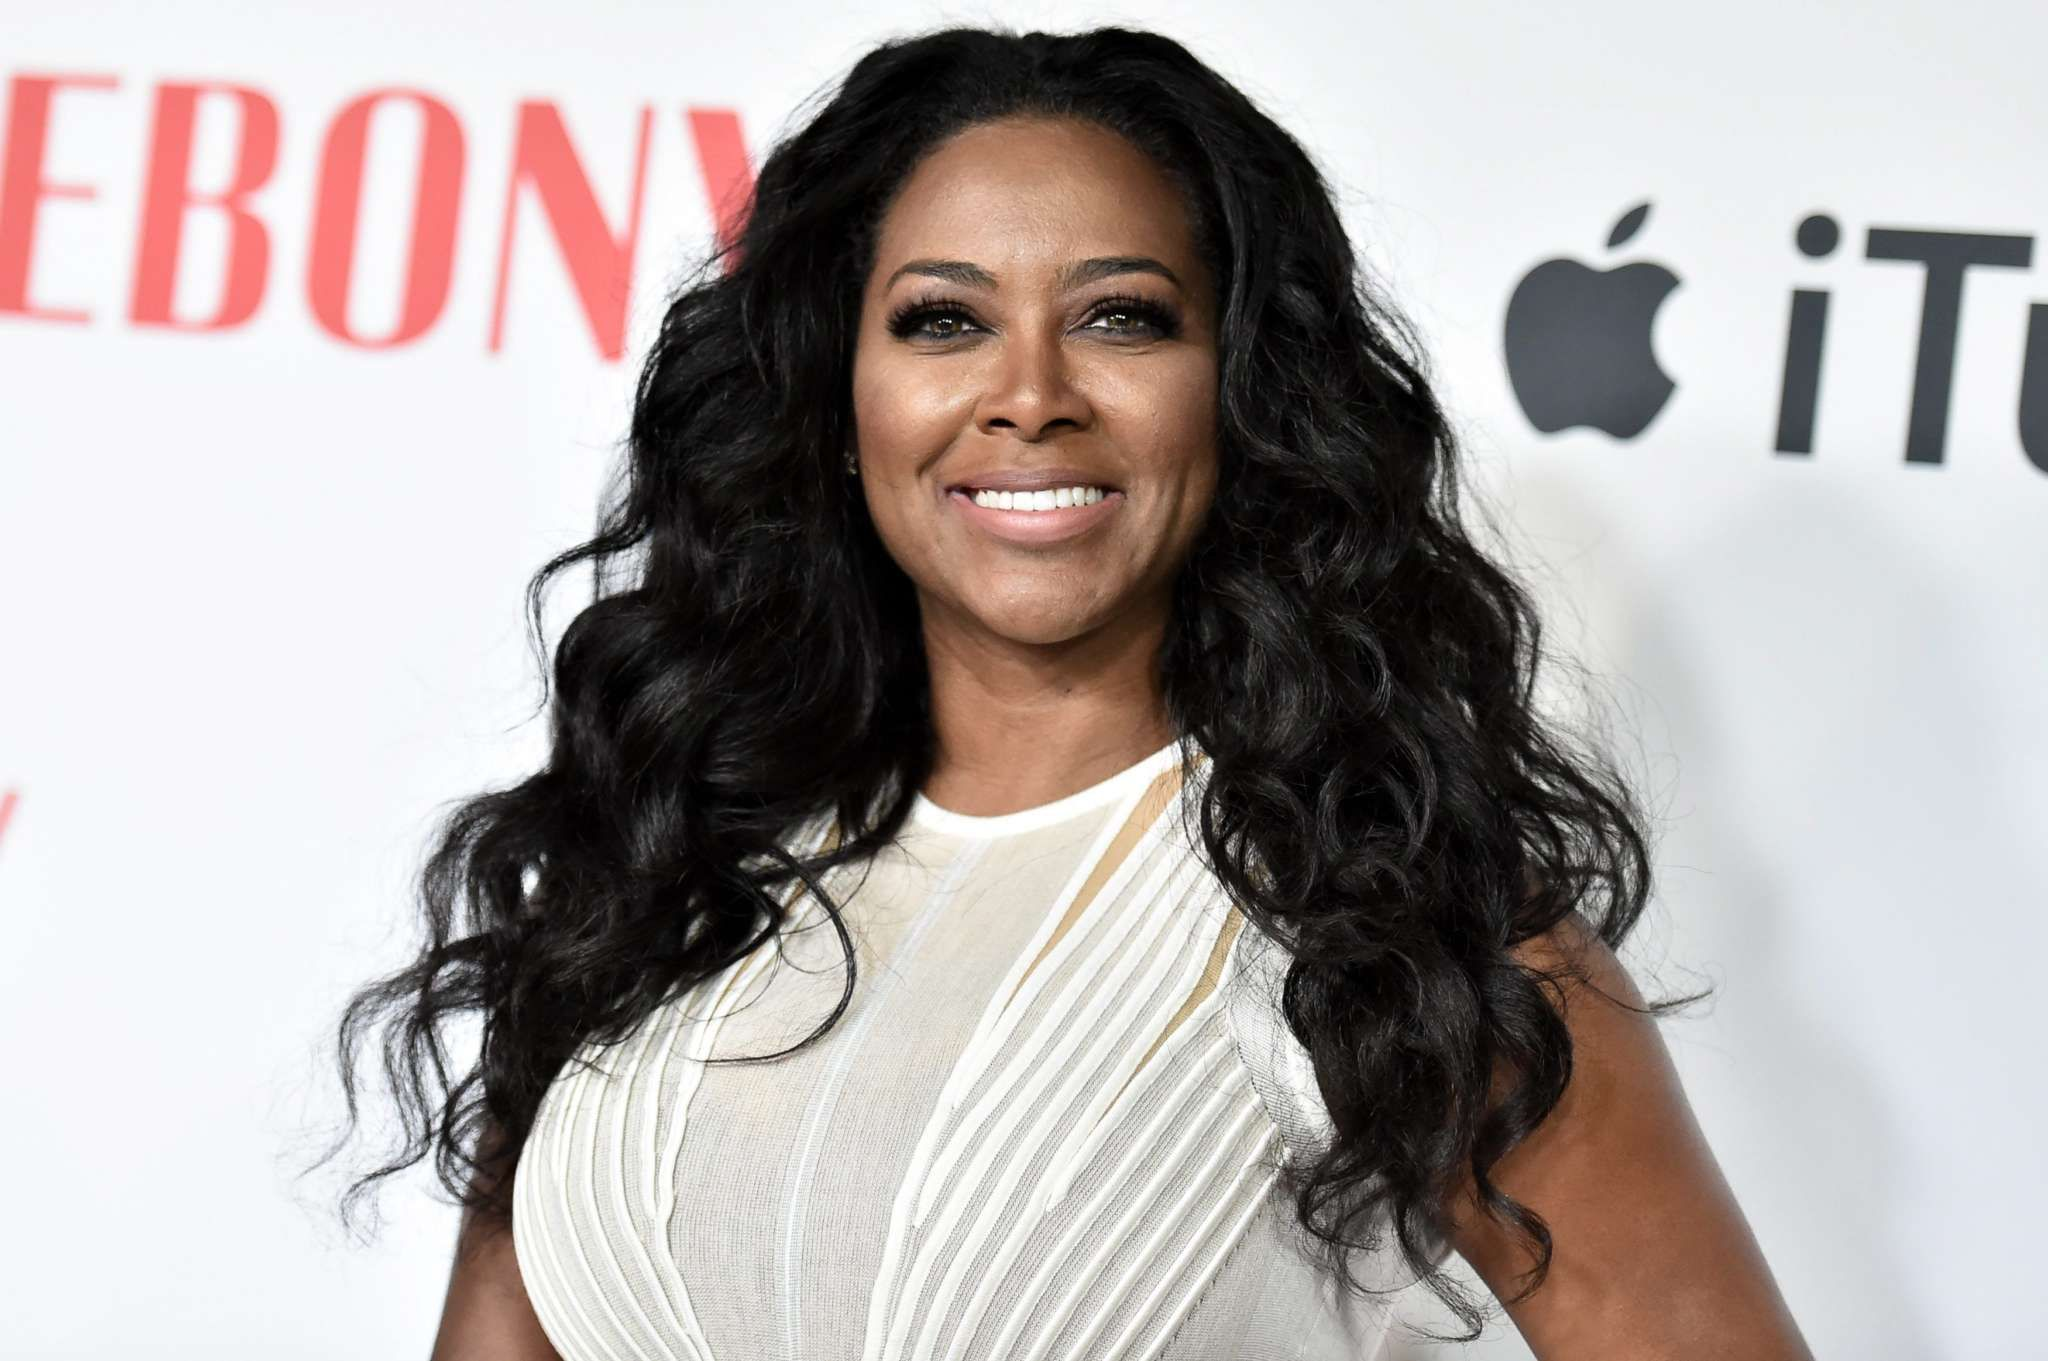 Kenya Moore's Fans Are Amazed By How 'Polished And Fly